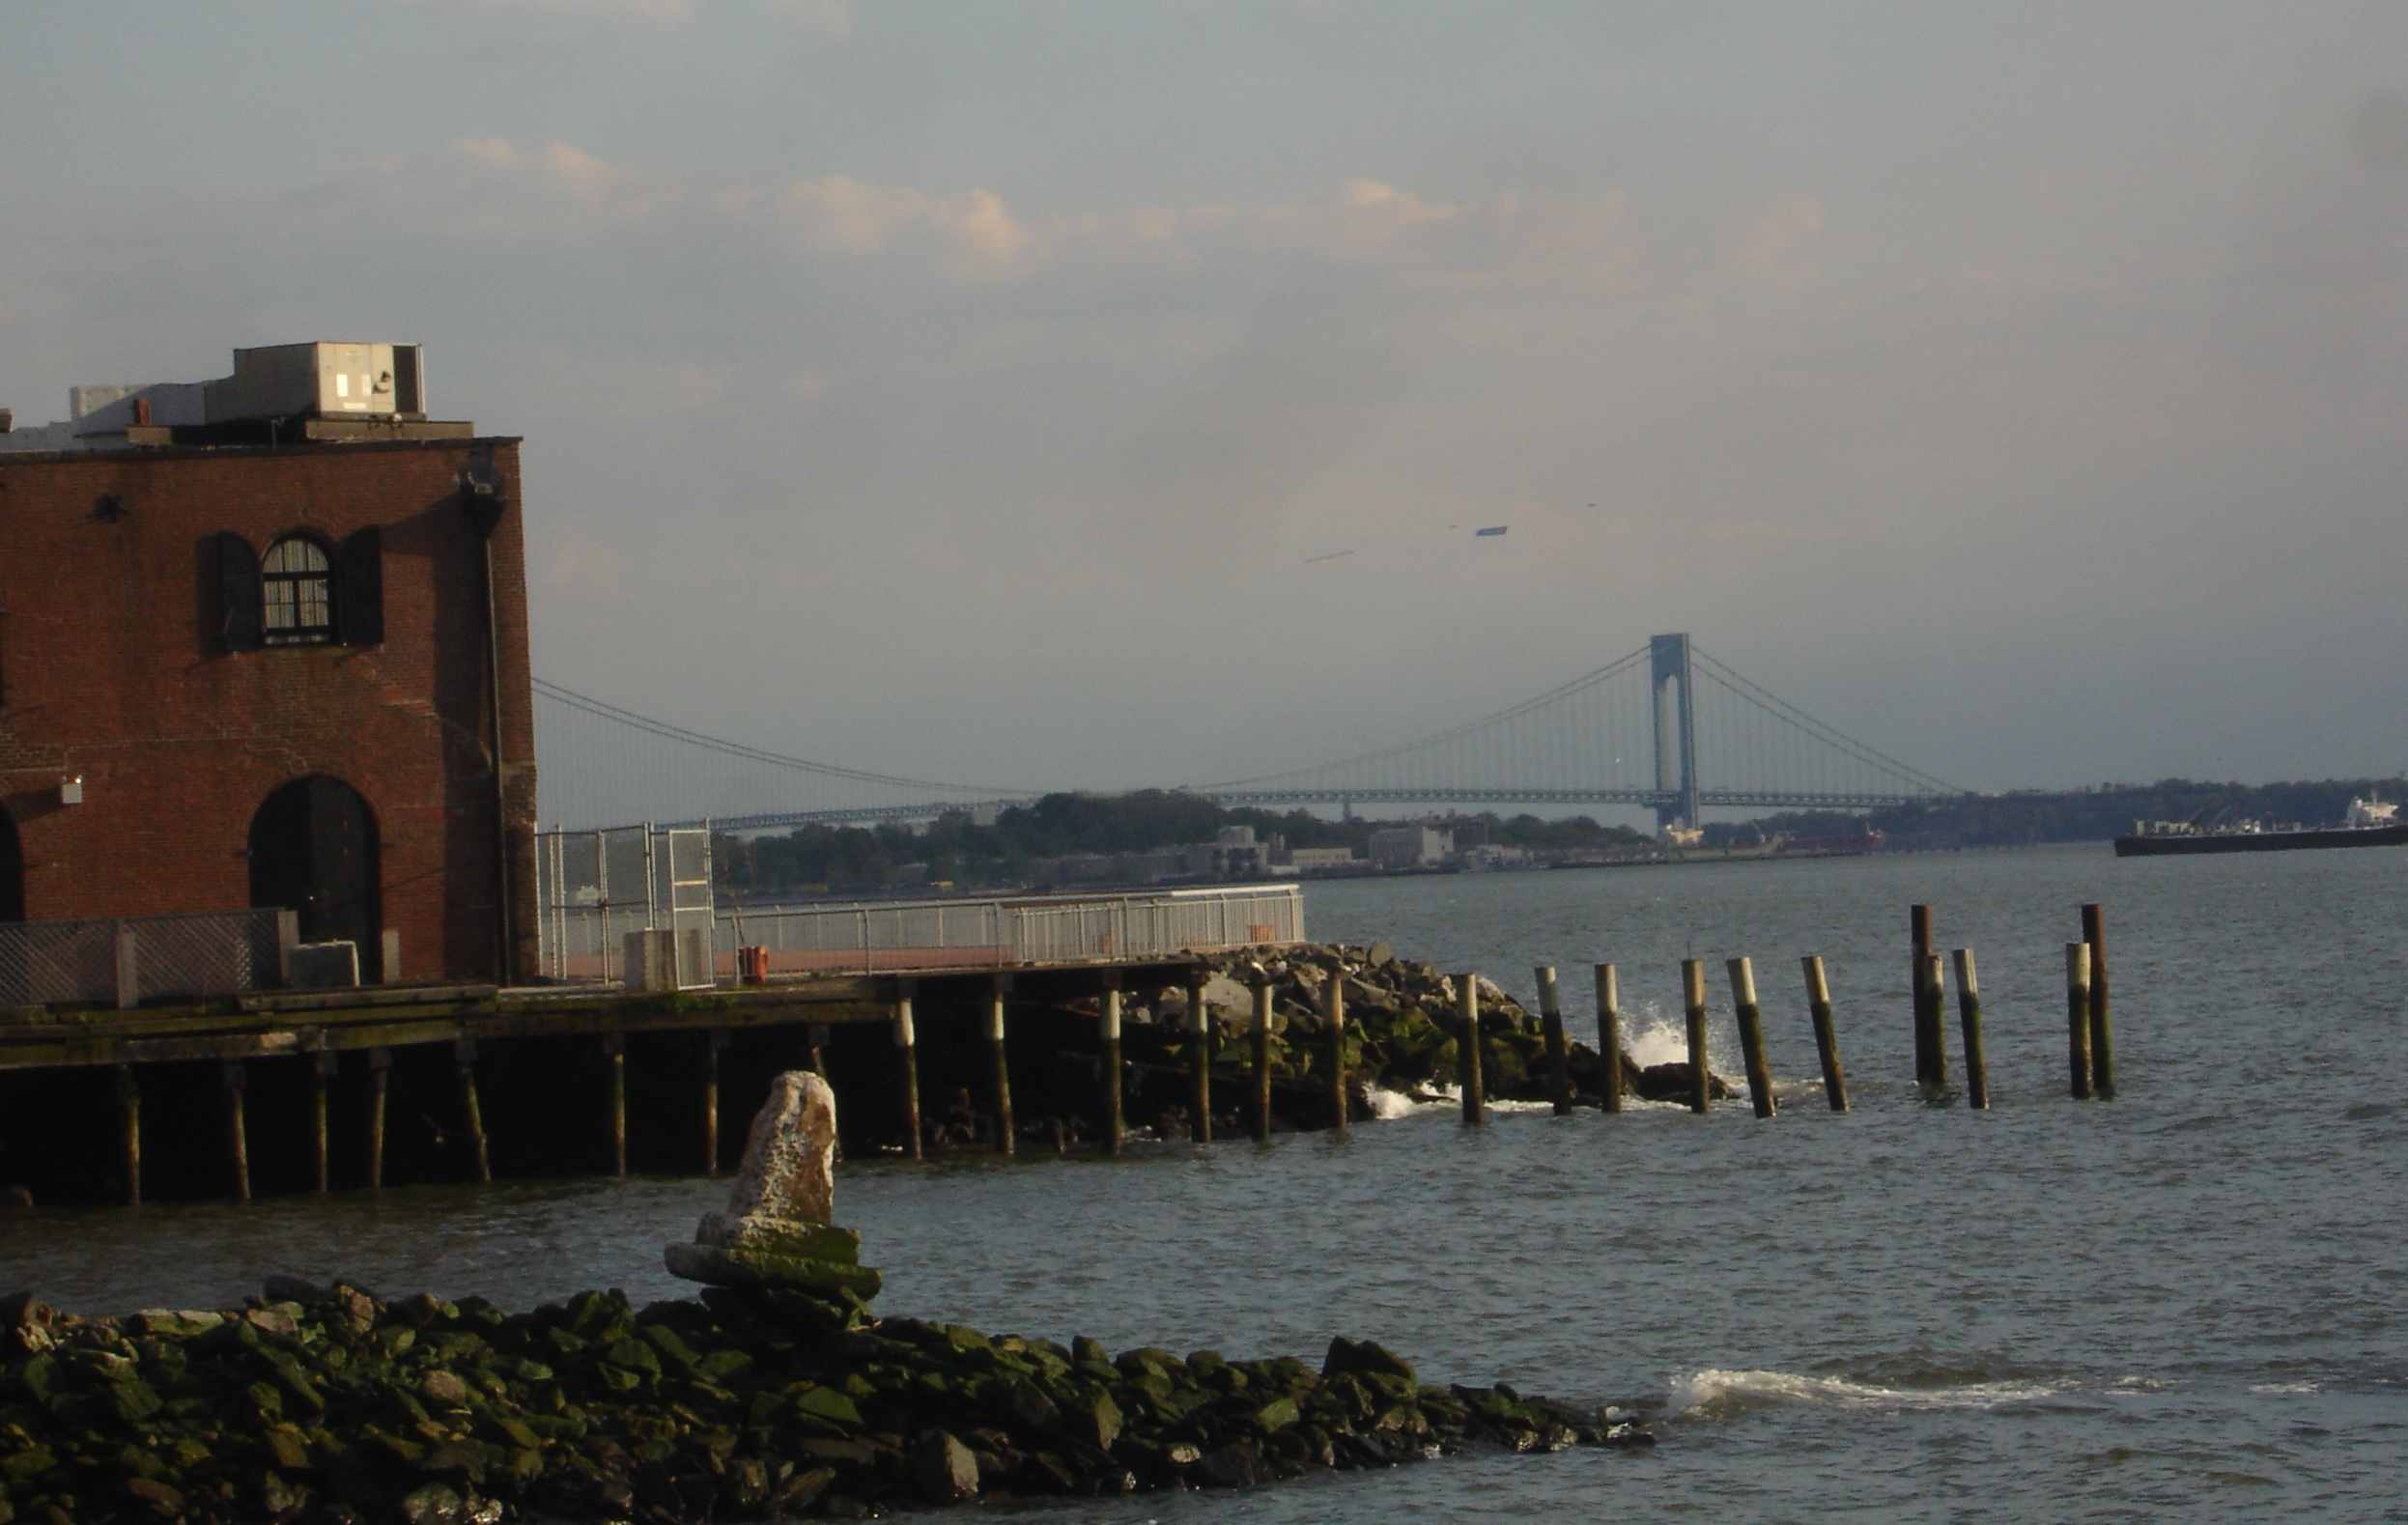 Red Hook's beautiful, desolate waterfront views often surprise first-time visitors.